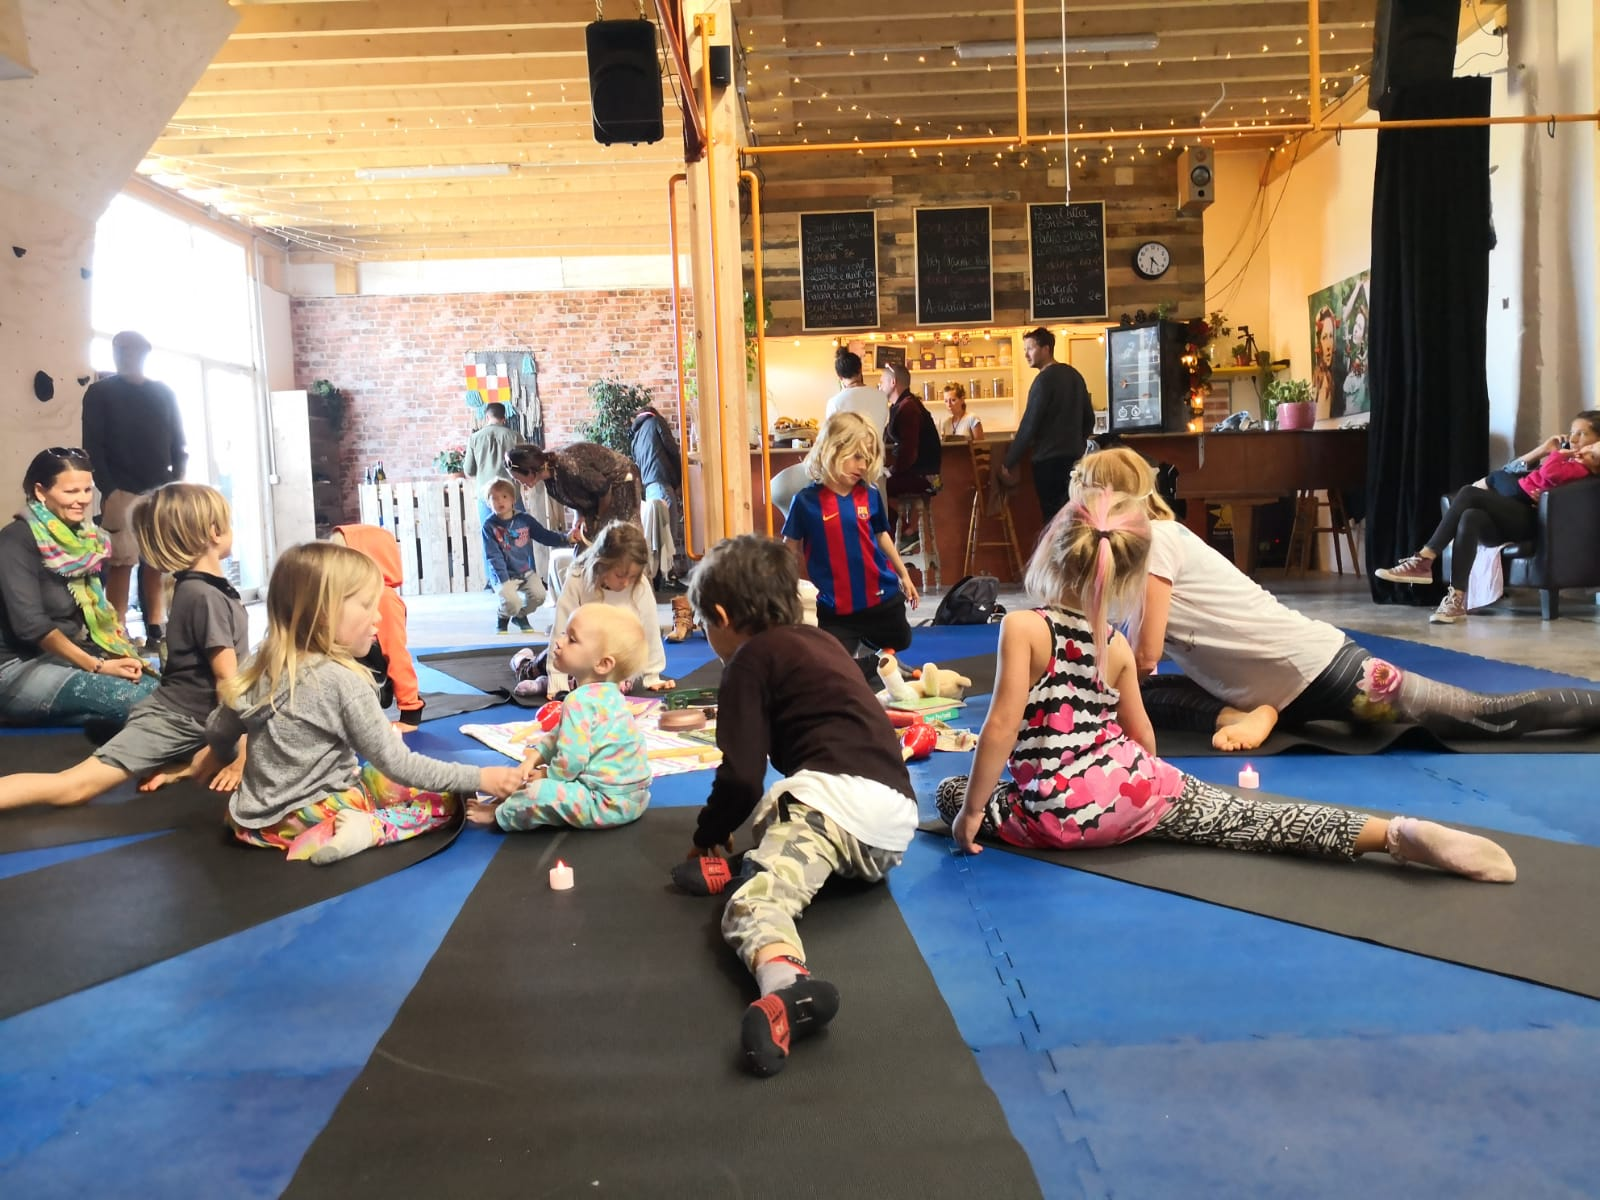 Healing powers of yoga for young people.